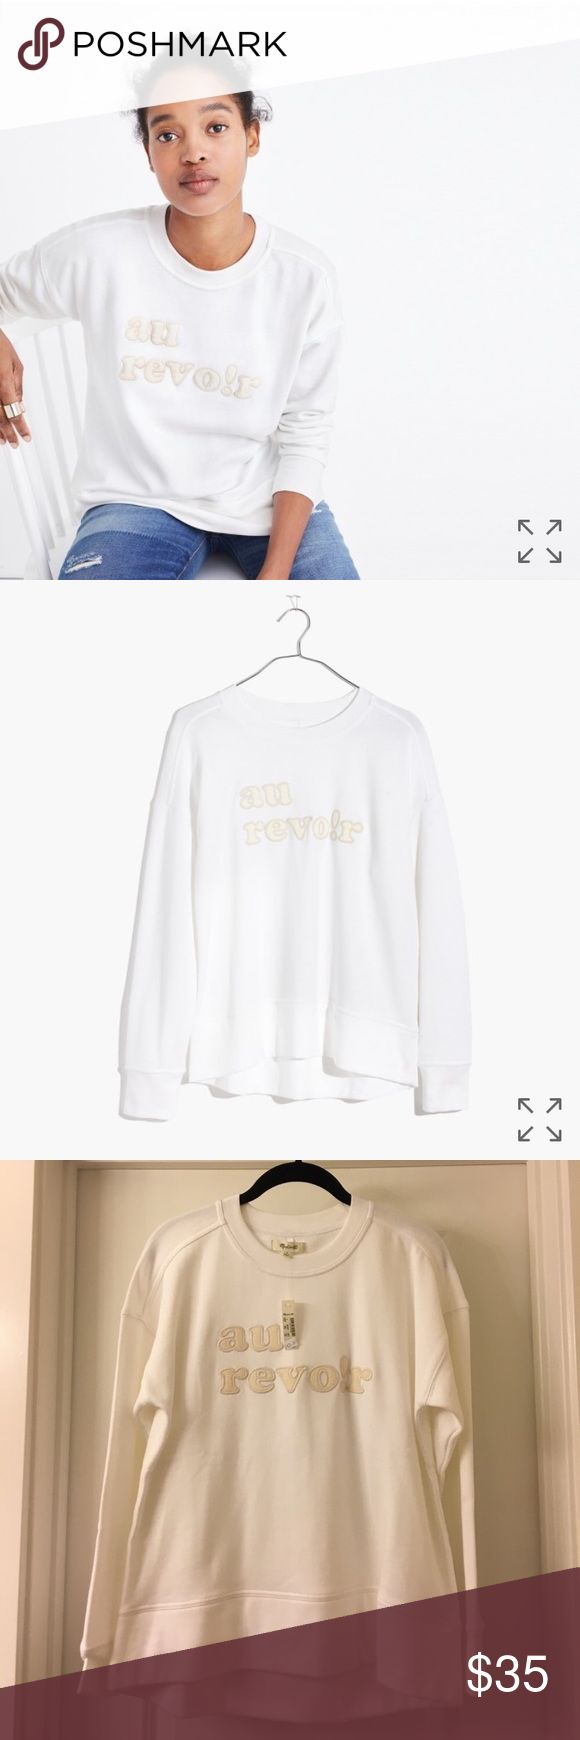 """Madewell sweatshirt Au Revoir means """"good-bye"""" in French, but we'll be saying """"hi"""" to this cozy-cool sweatshirt all season long. Textural terry letters give it a vintage feel.  Relaxed fit. Cotton. Machine wash. Import. Madewell Tops Sweatshirts & Hoodies"""